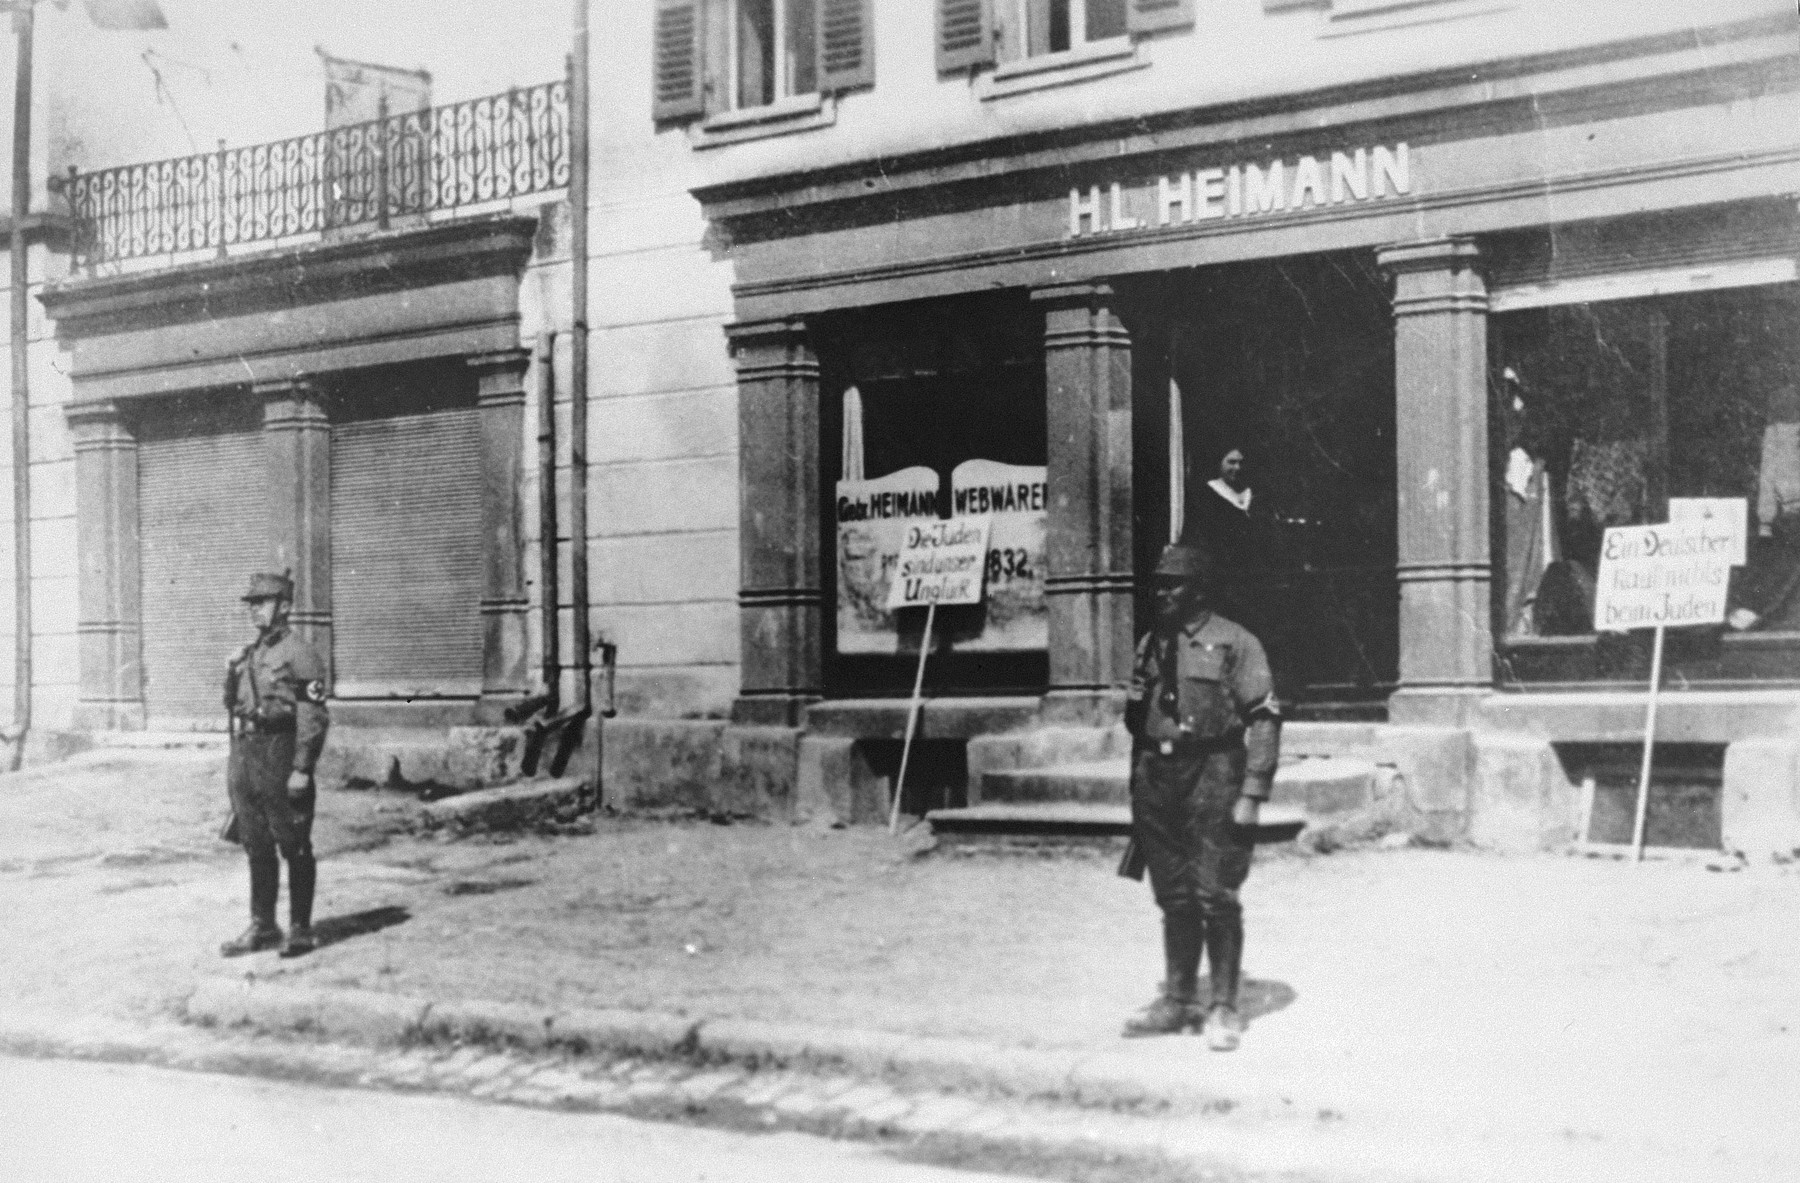 "Two Nazi stormtroopers stand guard in front of the H. L. Heimann store in Bopfingen, to prevent would-be shoppers from violating the Nazi boycott of Jewish-owned businesses.  Two signs have been placed in front of the store.  The sign on the left reads: ""The Jews are our Misfortune.""  The sign on the right reads:  ""A German buys nothing from Jews.""  The business belonged to the donor's father.  Pictured at the entrance to the store is Sali Heimann, who was later killed in a concentration camp in Riga."